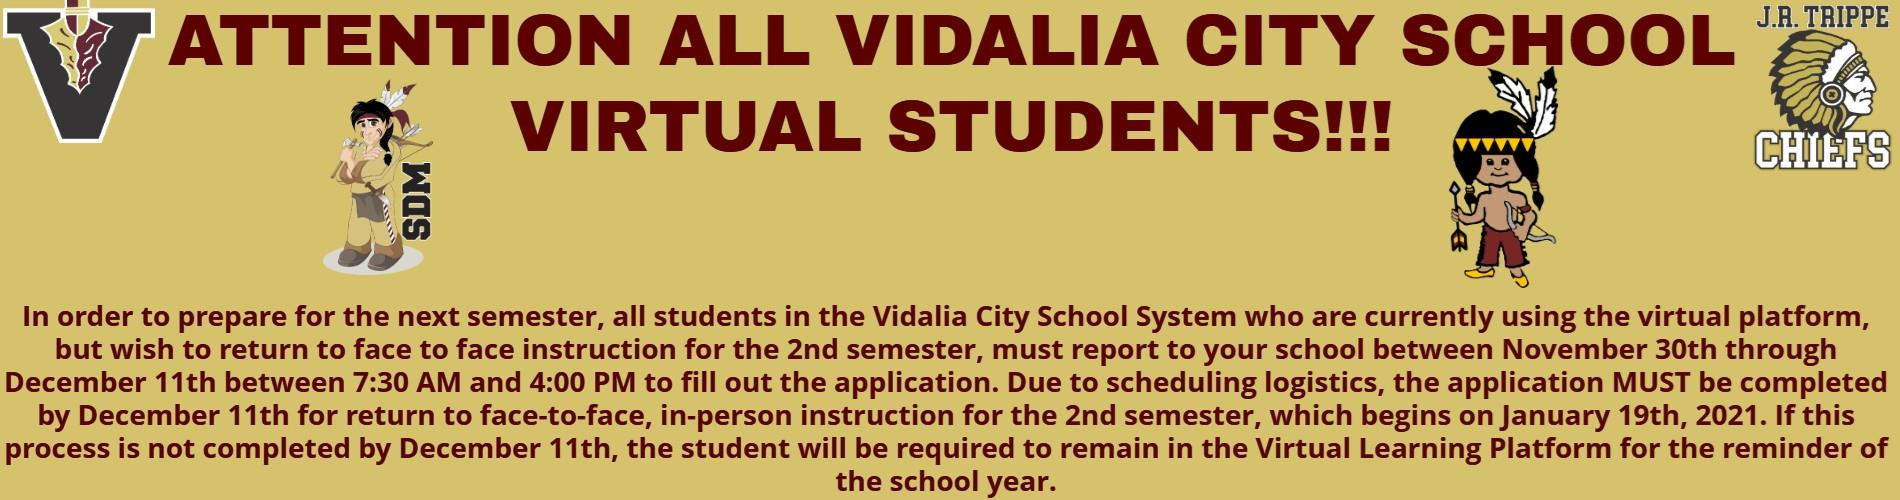 Virtual Student Info for for 2nd Semester